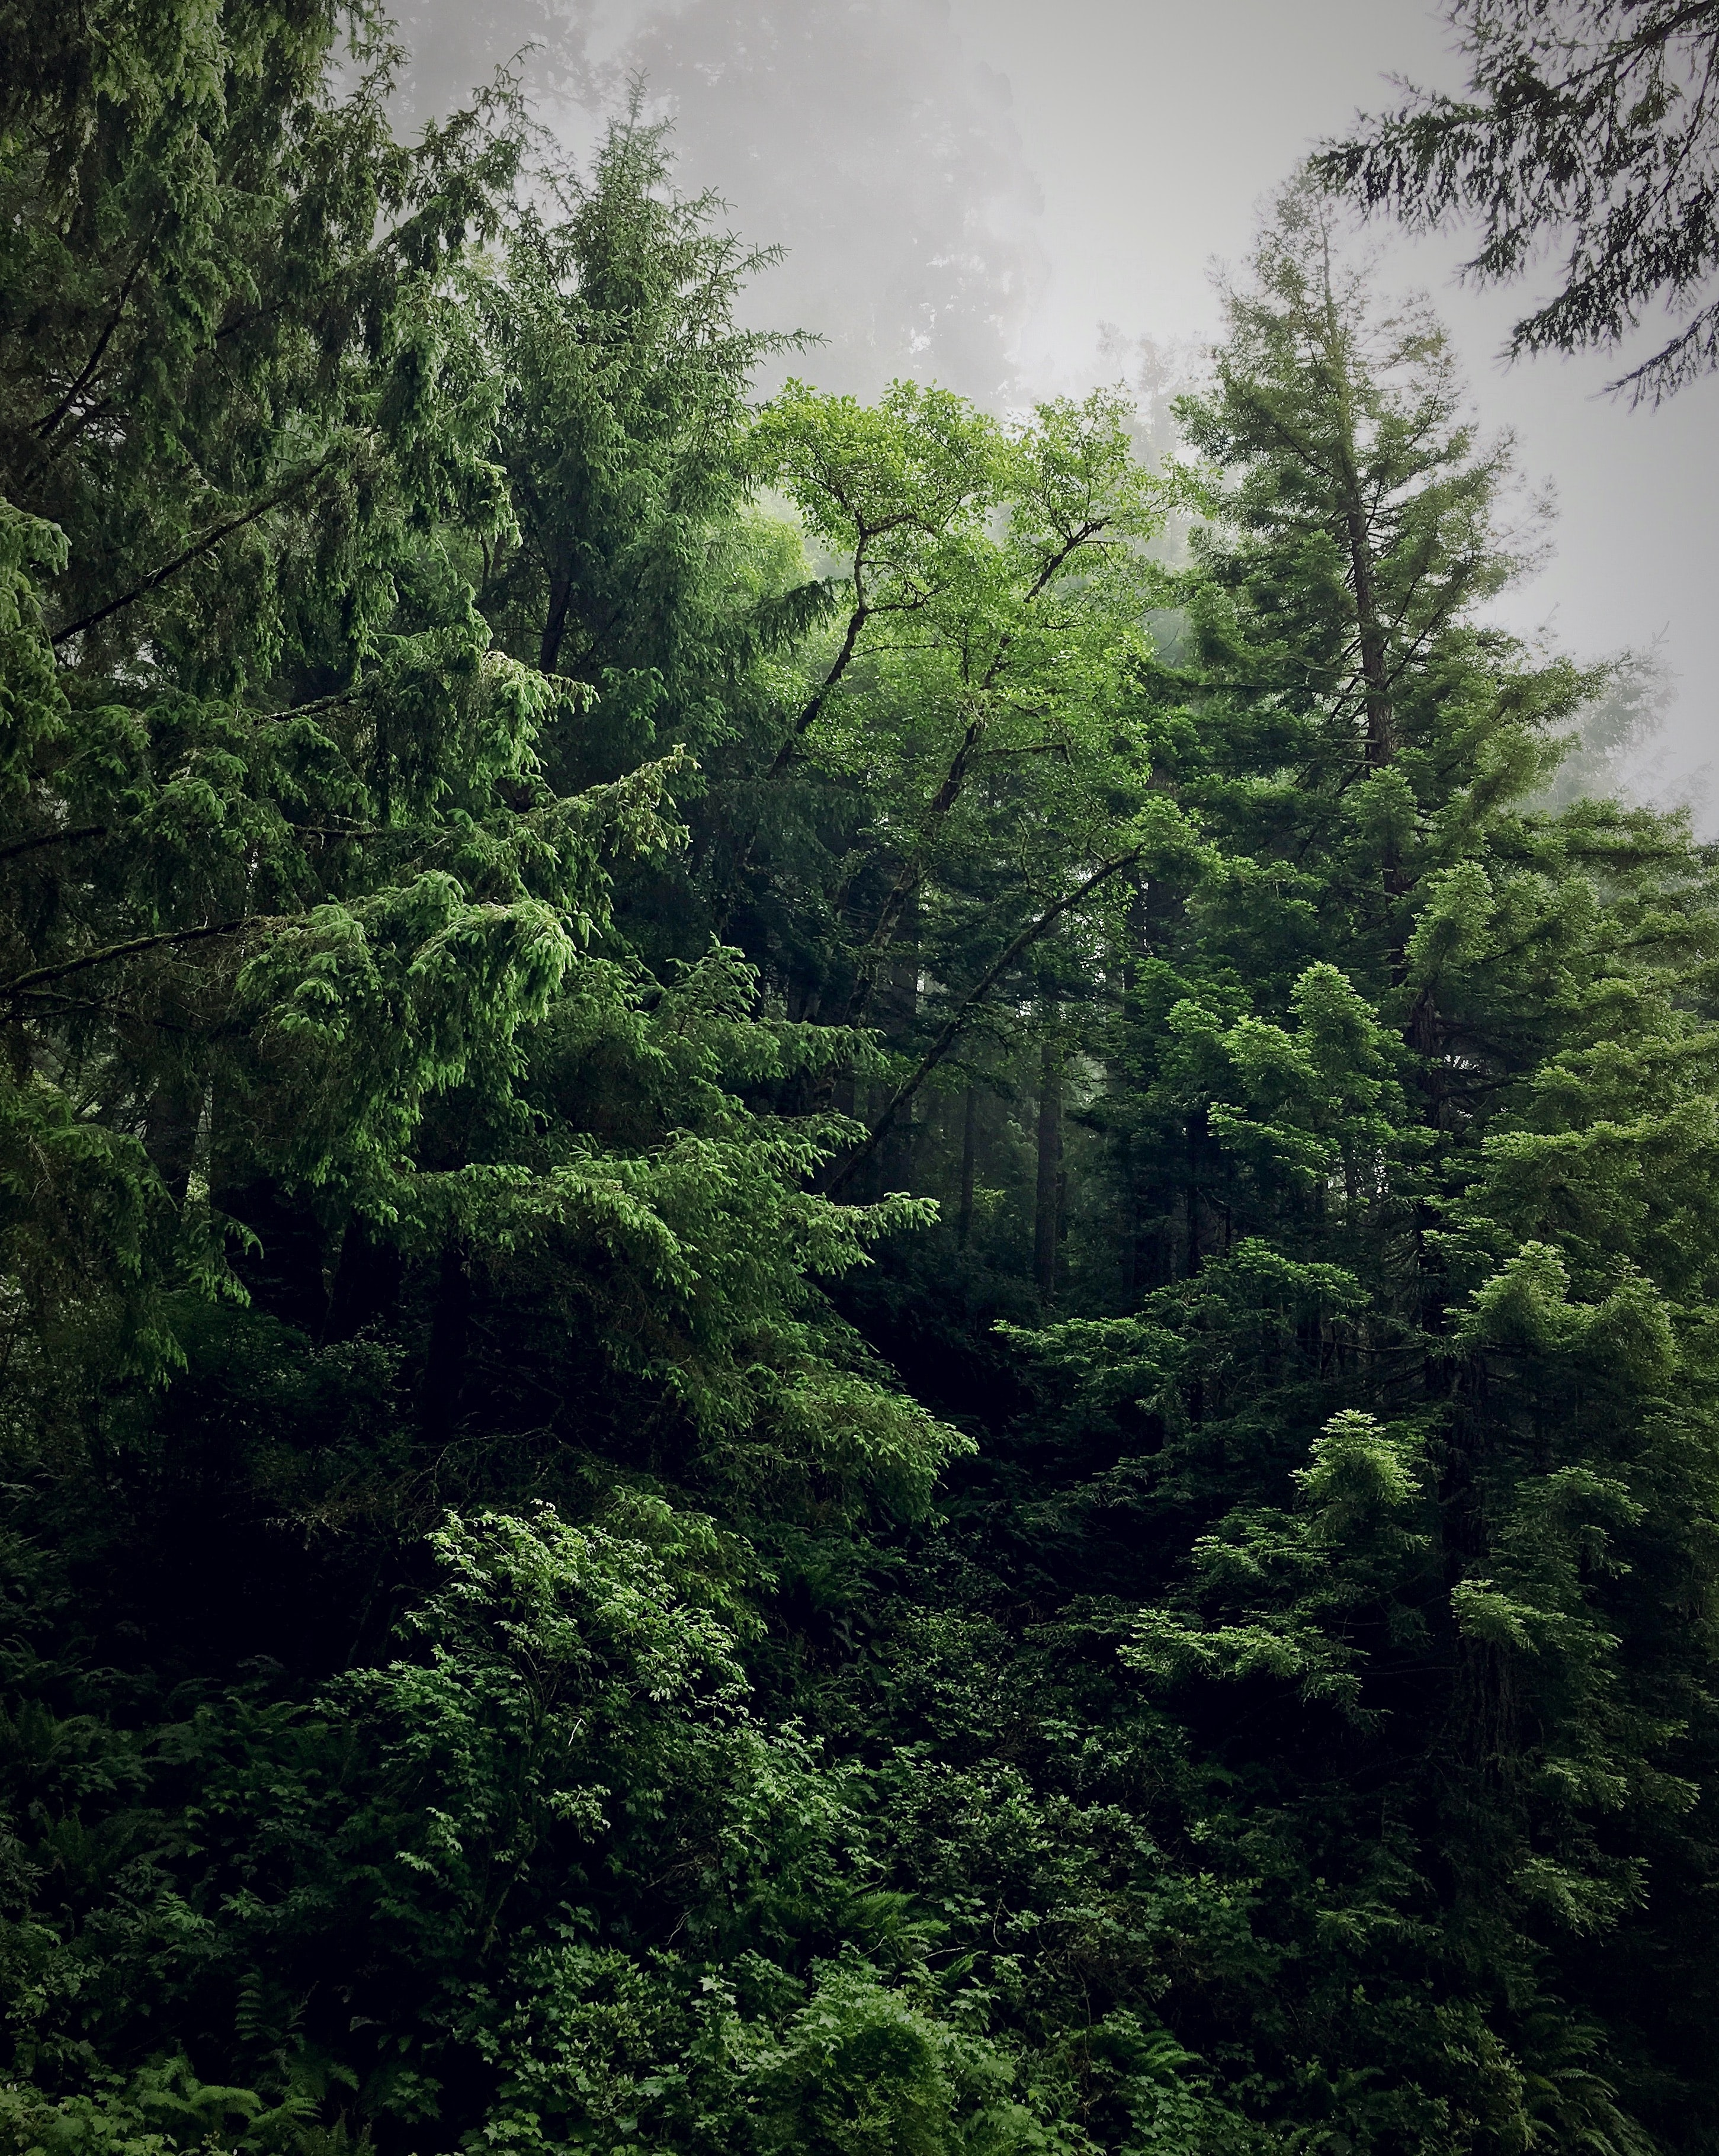 Lush green pine forest on a foggy evening